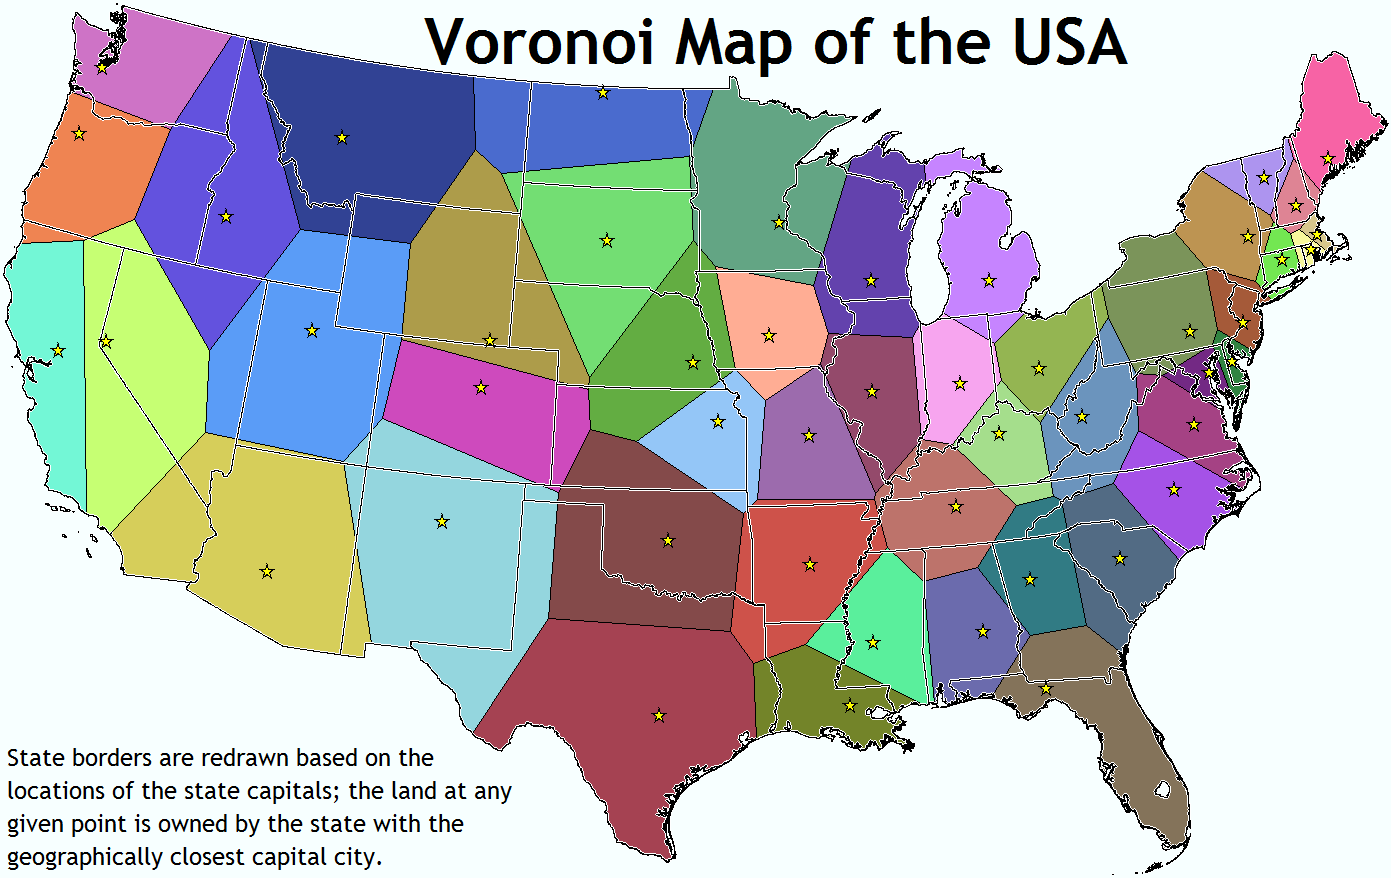 there are no good state capital pictures but i found this interesting states are re drawn based on capital location whatever the hell that means